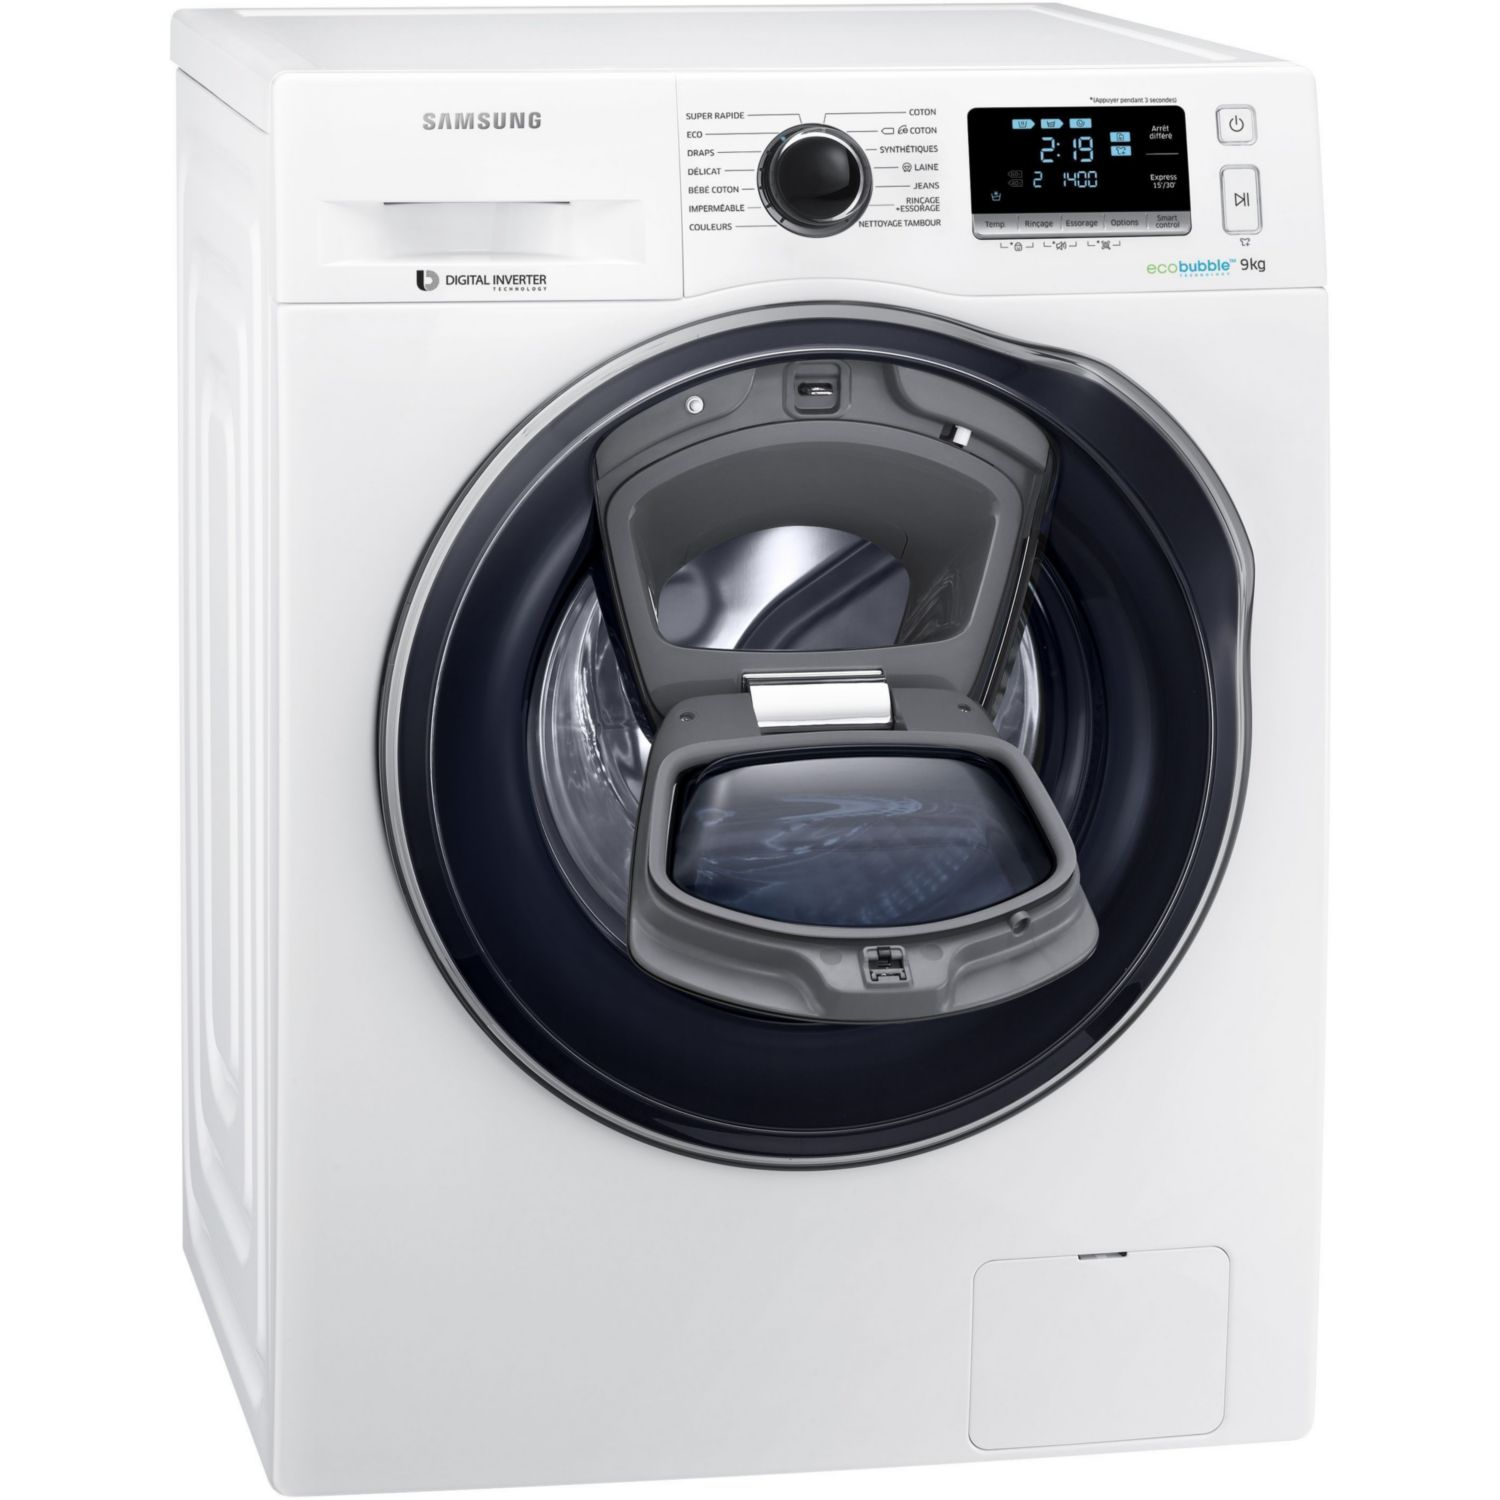 Location sur location lave linge frontal samsung add wash ww90k6414qw ef - Lave linge qui pue ...